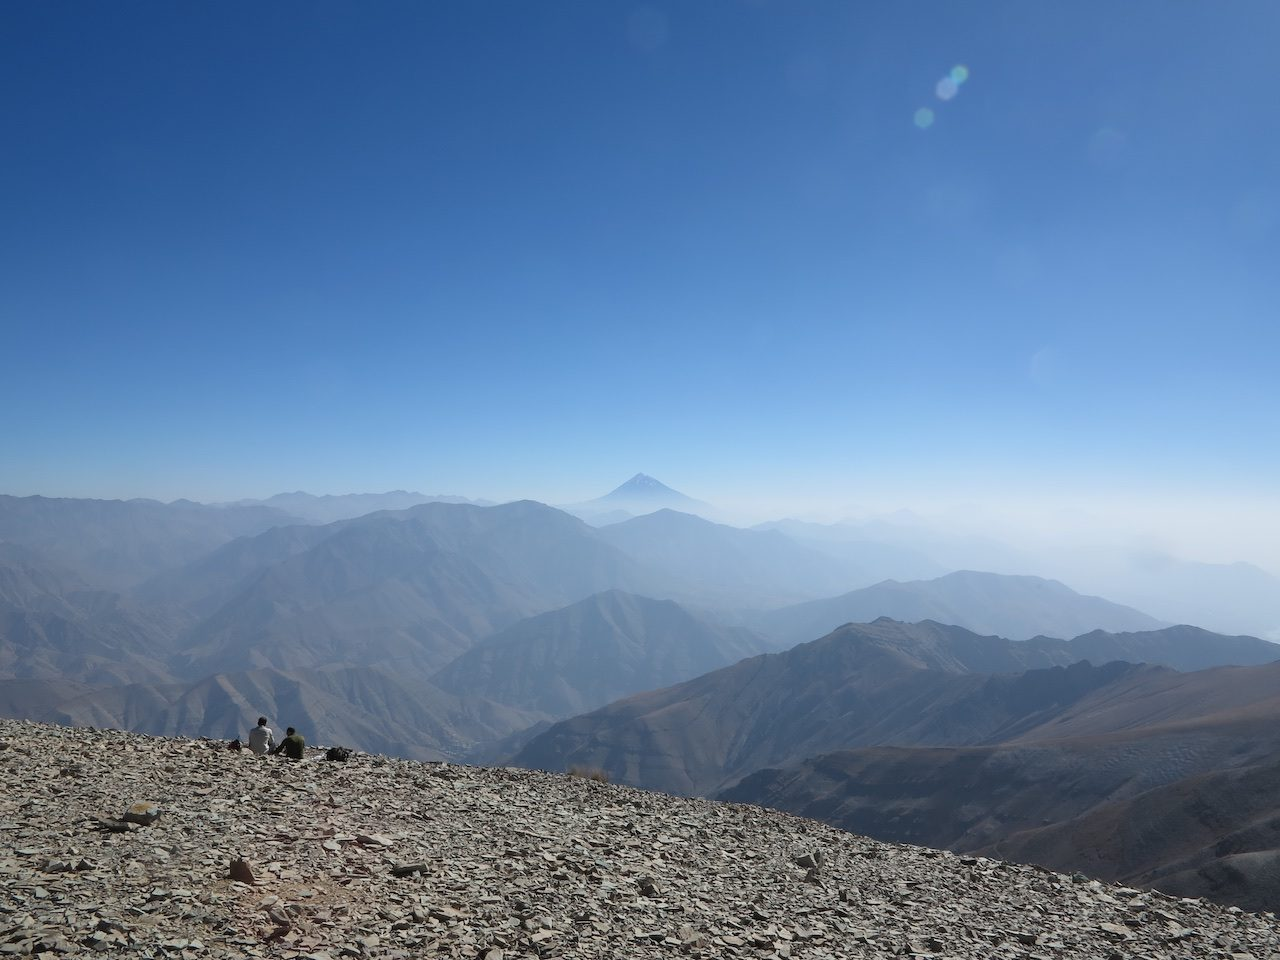 Mount Damavand in the distance